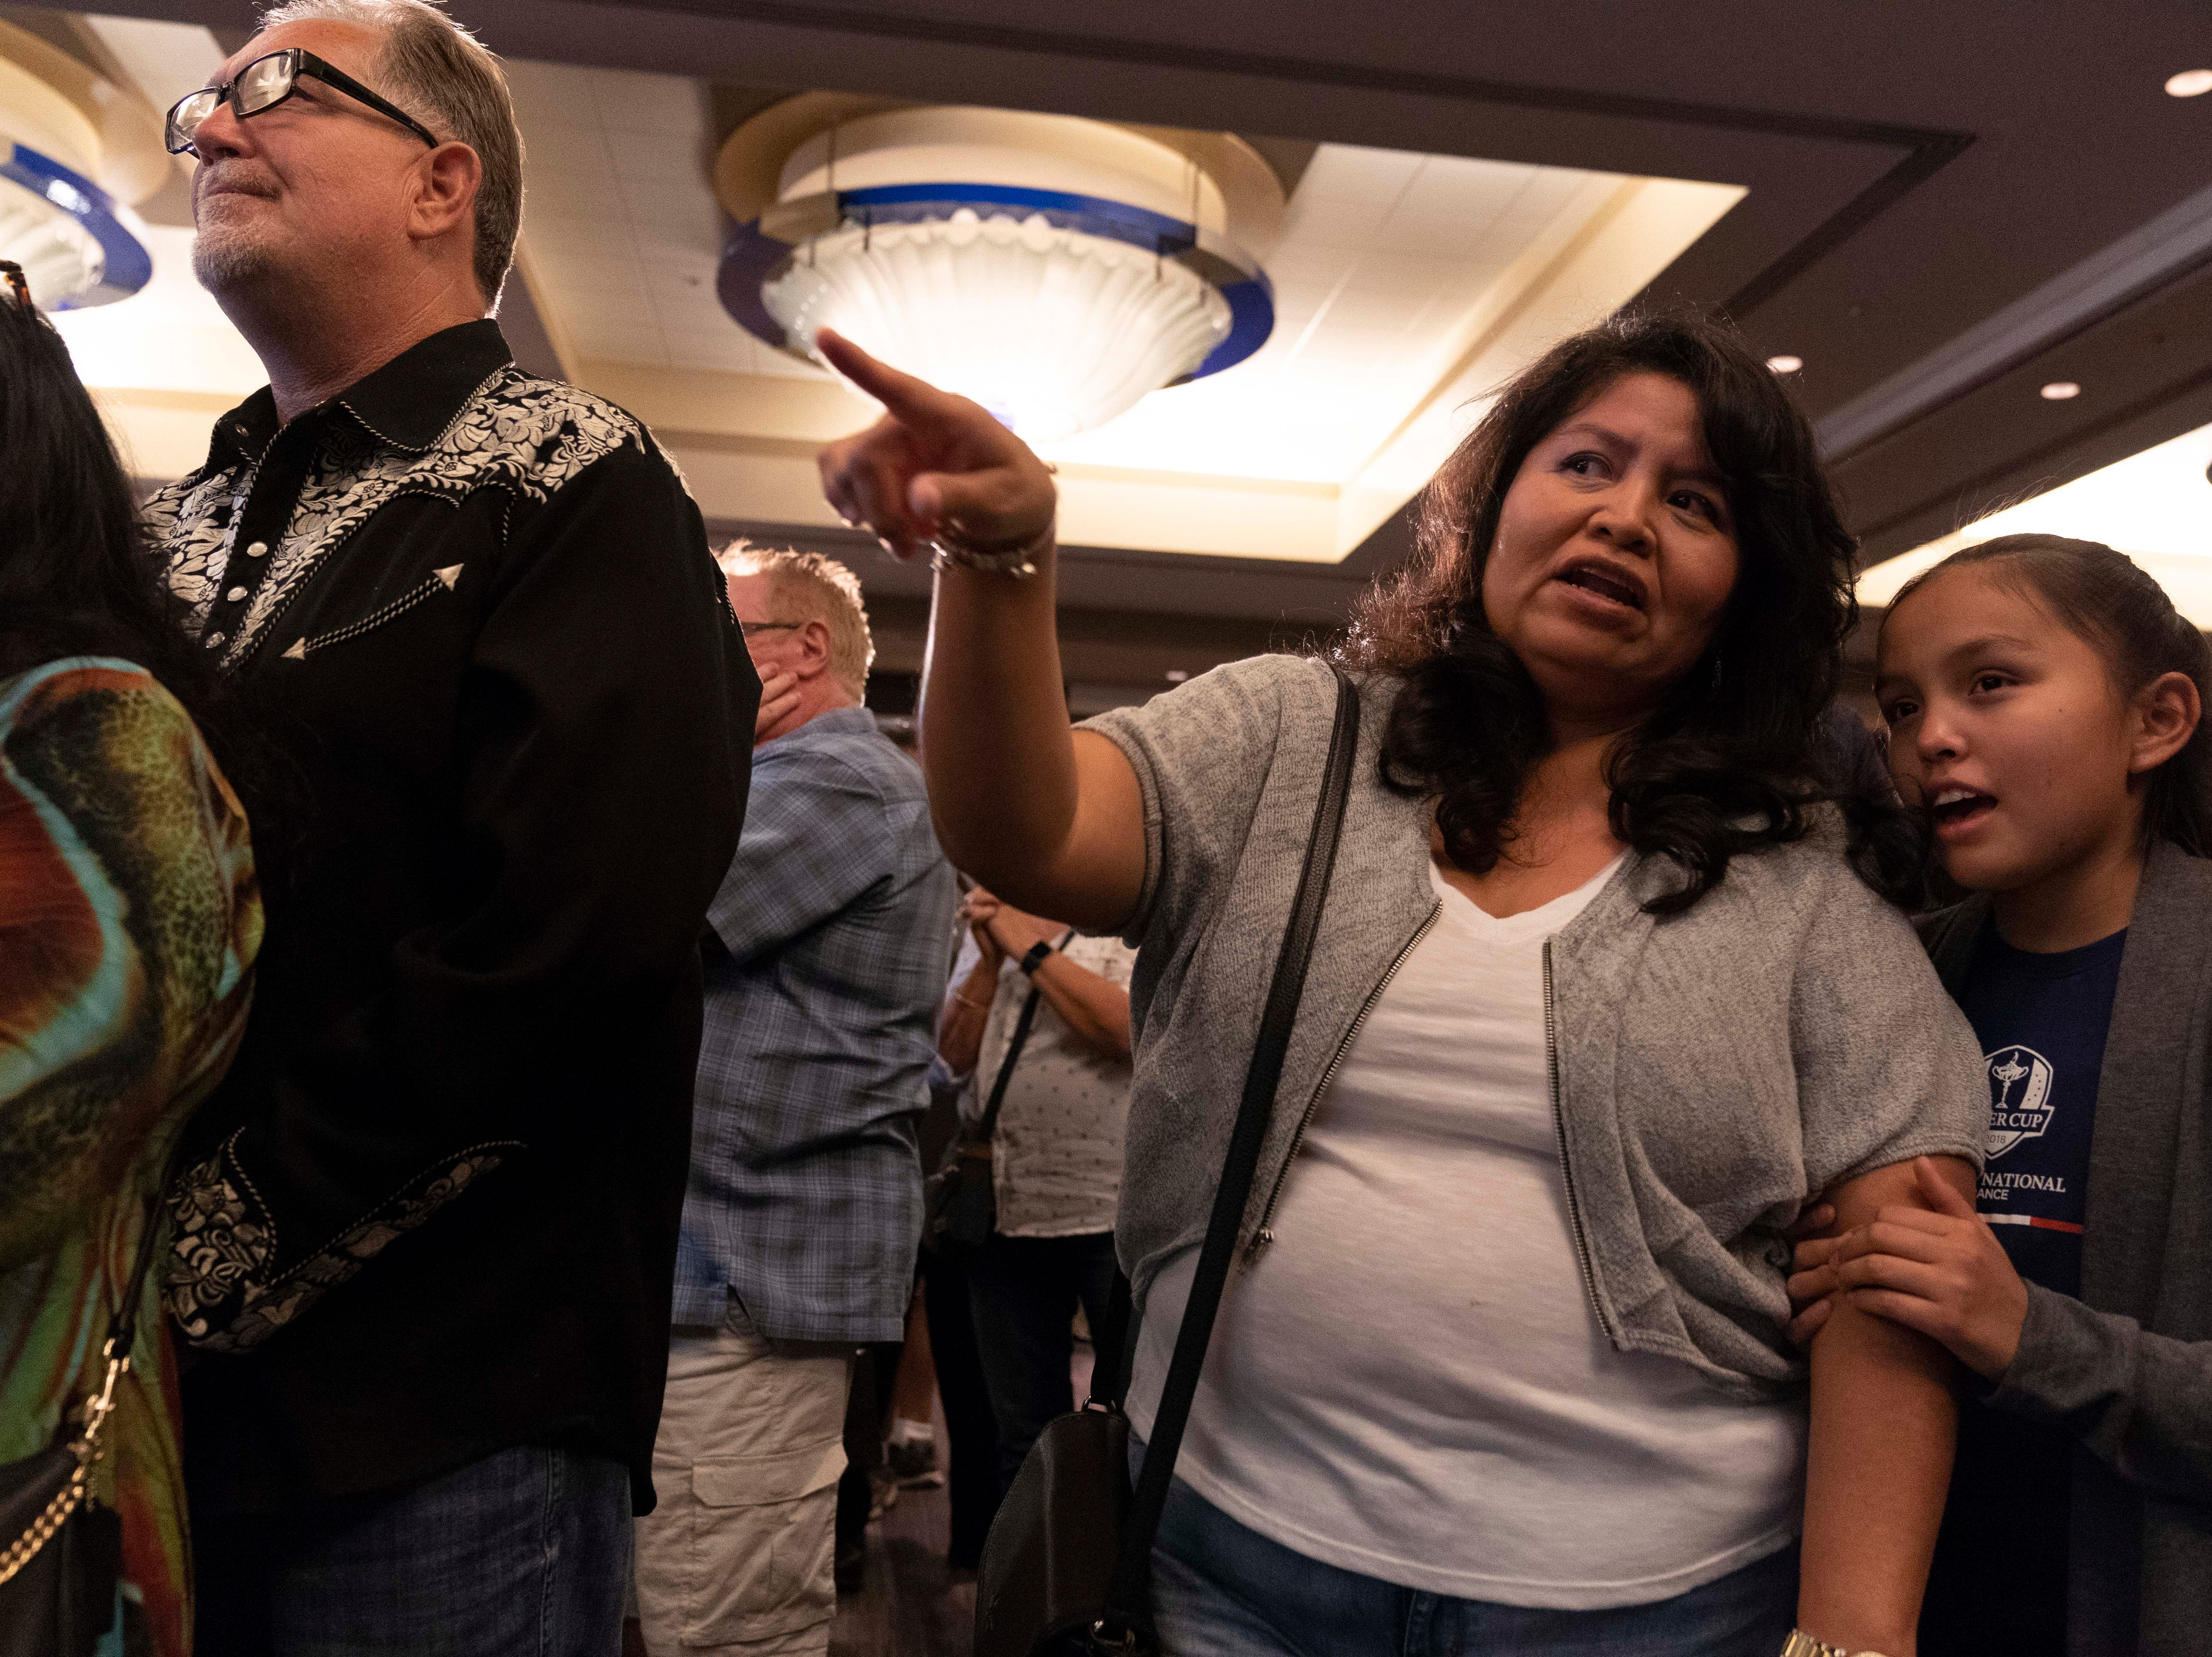 Democrat supporters Olivia Scott talks to her daughter Talon Watchman, 11, while others watch the national results on CNN at the Renaissance Phoenix Downtown Hotel on Nov. 6, 2018.